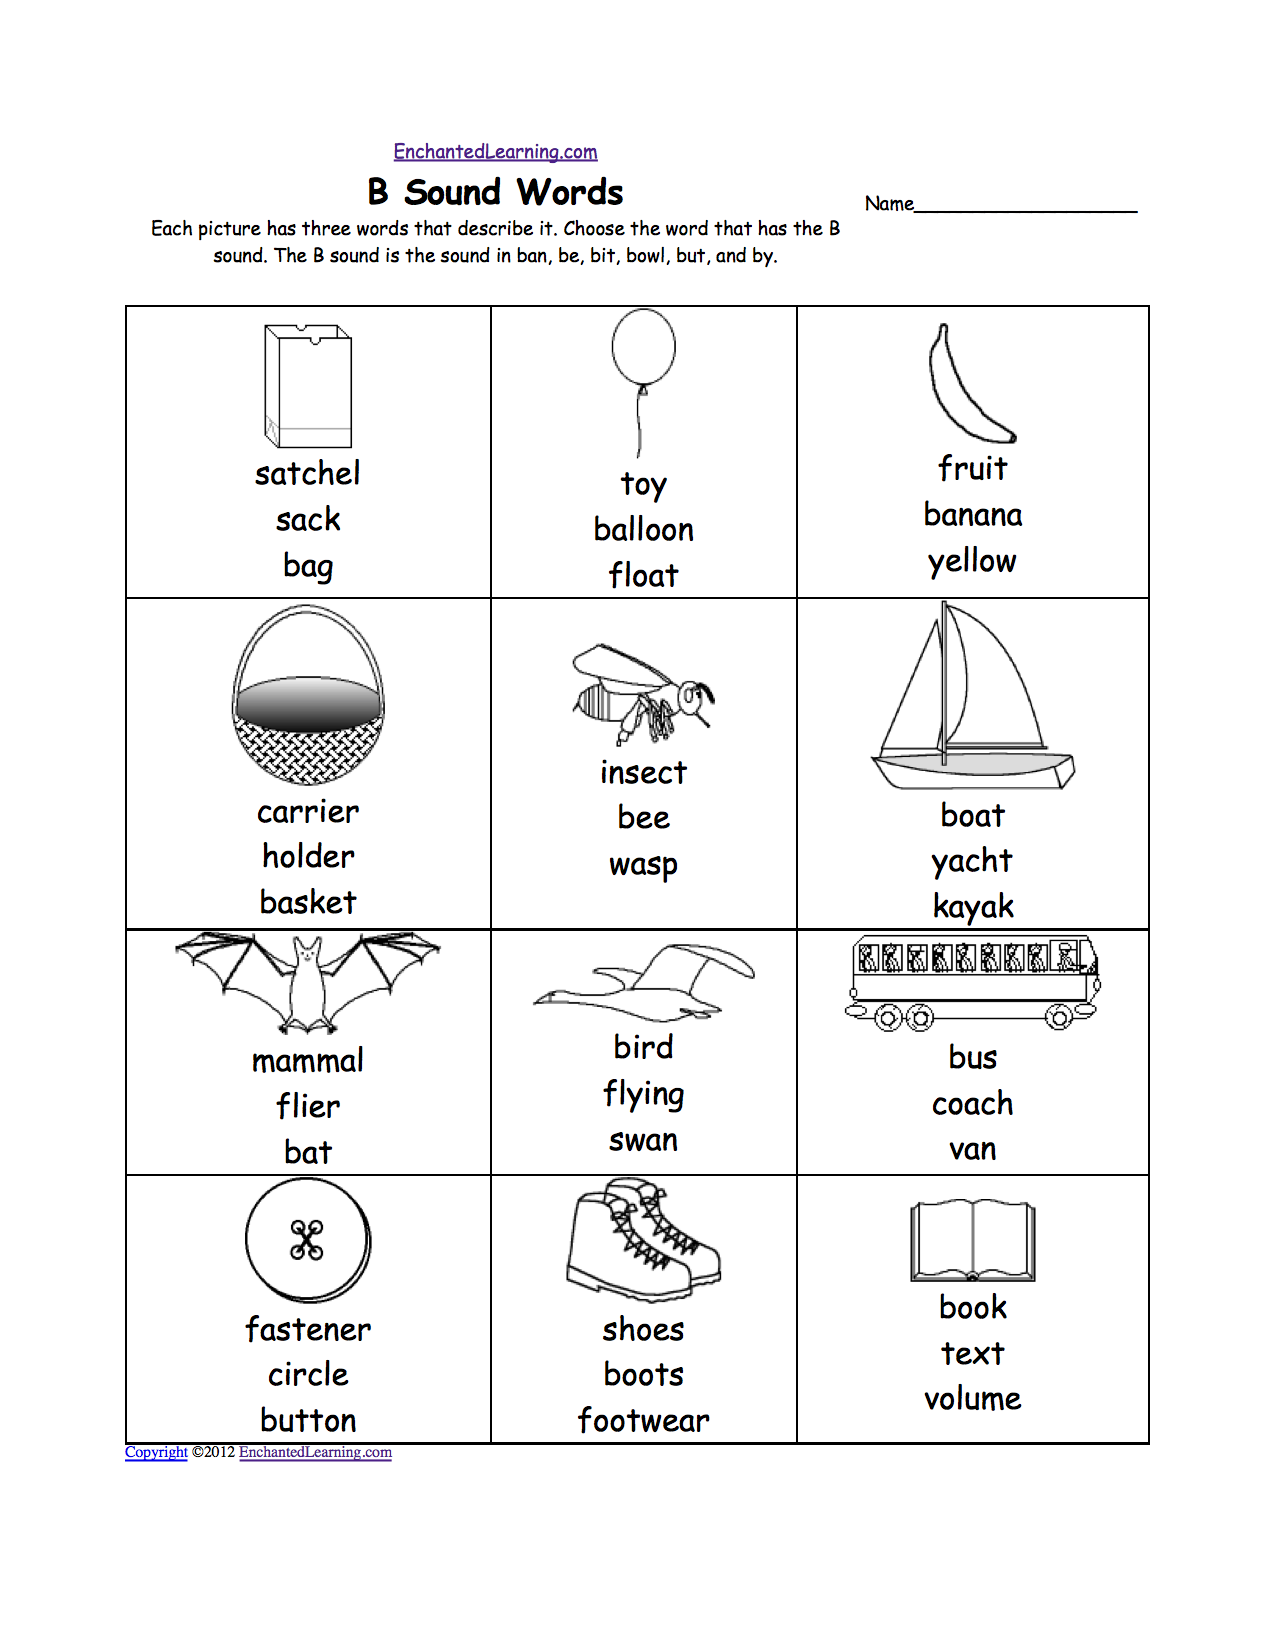 Weirdmailus  Wonderful Phonics Worksheets Multiple Choice Worksheets To Print  With Remarkable Quotbquot Sound Phonics Worksheet Multiple Choice Each Picture Has Three Words That Describe It Choose The Word That Has A Quotbquot Sound The Quotbquot Sound Is The Sound  With Cute Graphing Worksheets For St Grade Also Negative Automatic Thoughts Worksheet In Addition Images Of Worksheets And Iram Worksheet Usmc As Well As Writing Wizard Worksheets Additionally Closed Syllables Worksheets From Enchantedlearningcom With Weirdmailus  Remarkable Phonics Worksheets Multiple Choice Worksheets To Print  With Cute Quotbquot Sound Phonics Worksheet Multiple Choice Each Picture Has Three Words That Describe It Choose The Word That Has A Quotbquot Sound The Quotbquot Sound Is The Sound  And Wonderful Graphing Worksheets For St Grade Also Negative Automatic Thoughts Worksheet In Addition Images Of Worksheets From Enchantedlearningcom